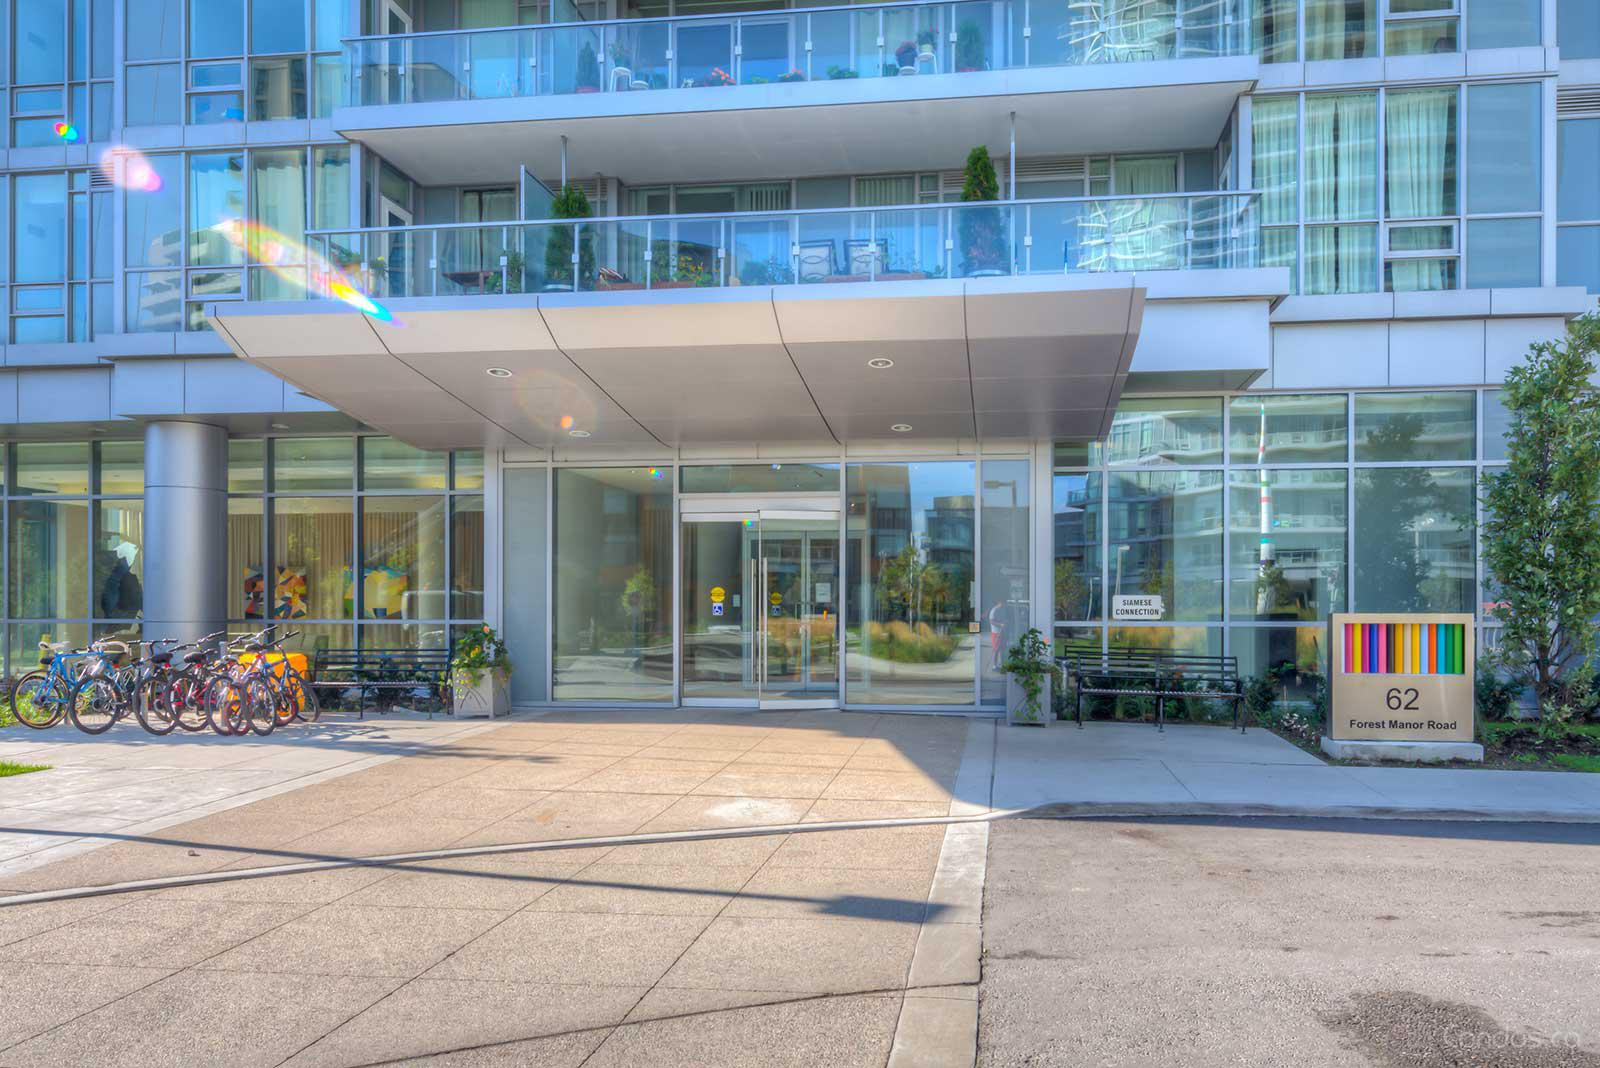 Dream Tower at Emerald City at 62 Forest Manor Rd, Toronto 1